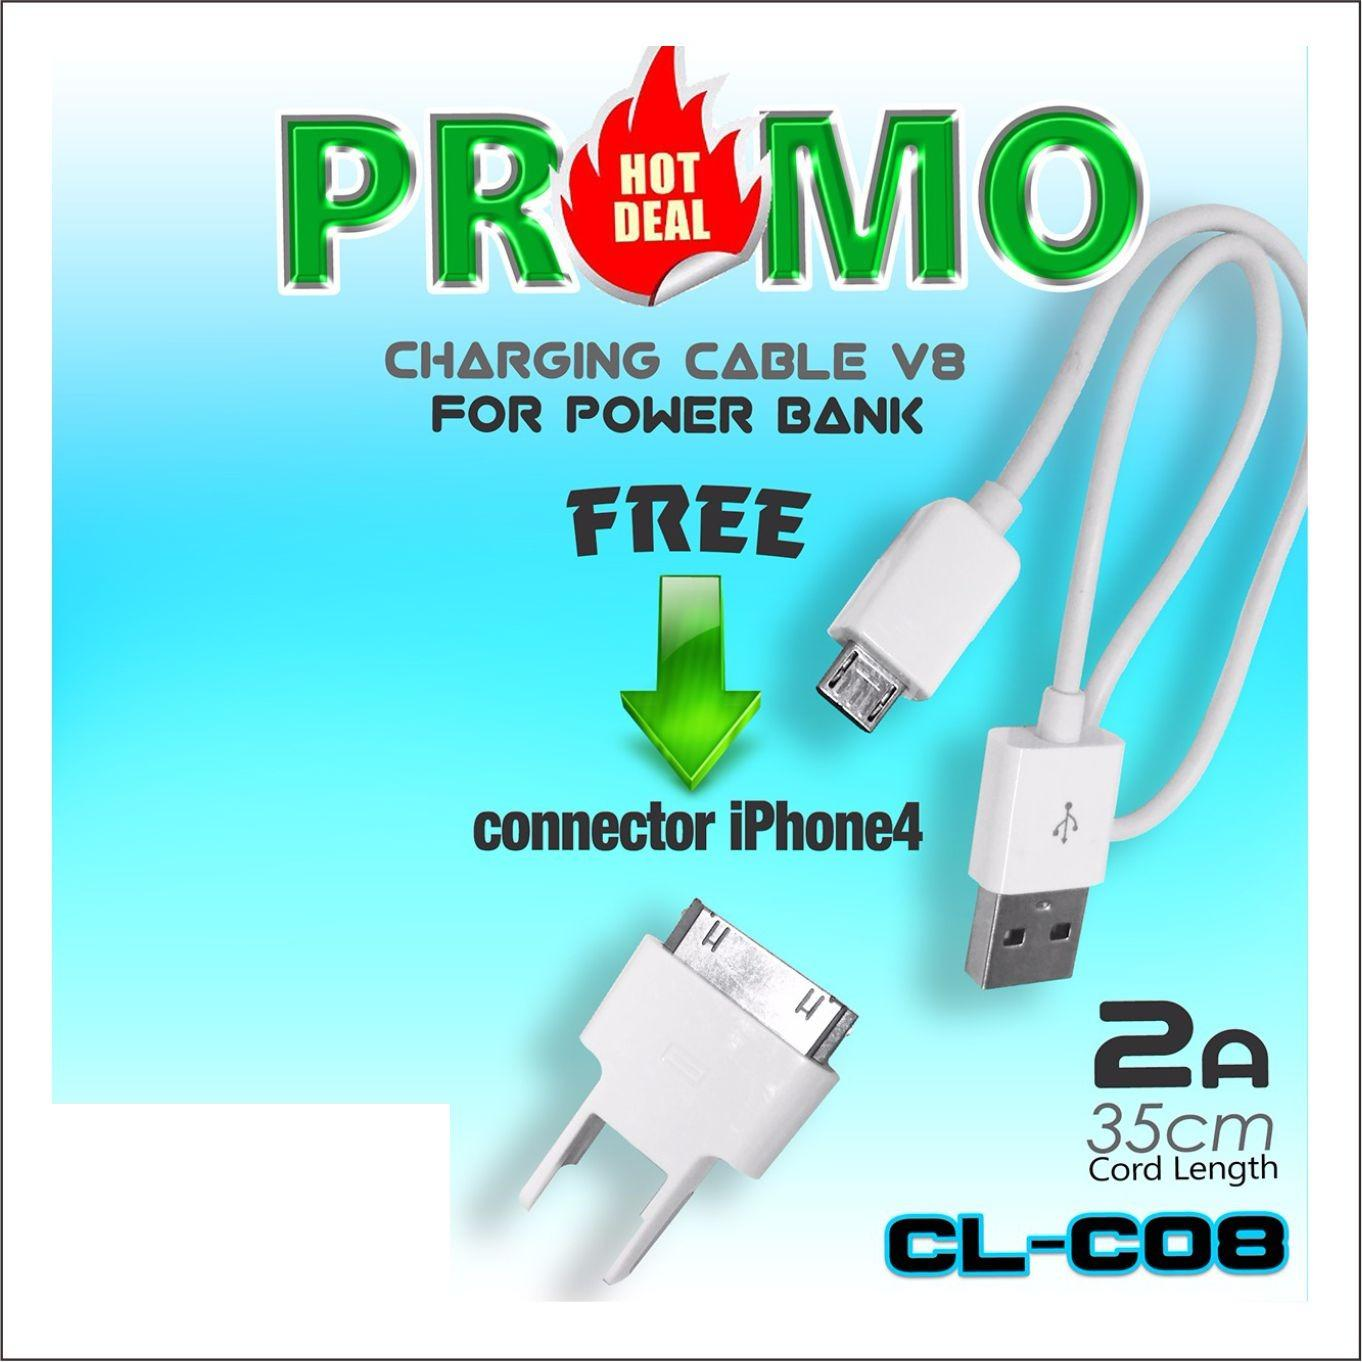 Kabel charger cl-c08 2in1 Universal USB Micro dan iphone 4 2A warna putih